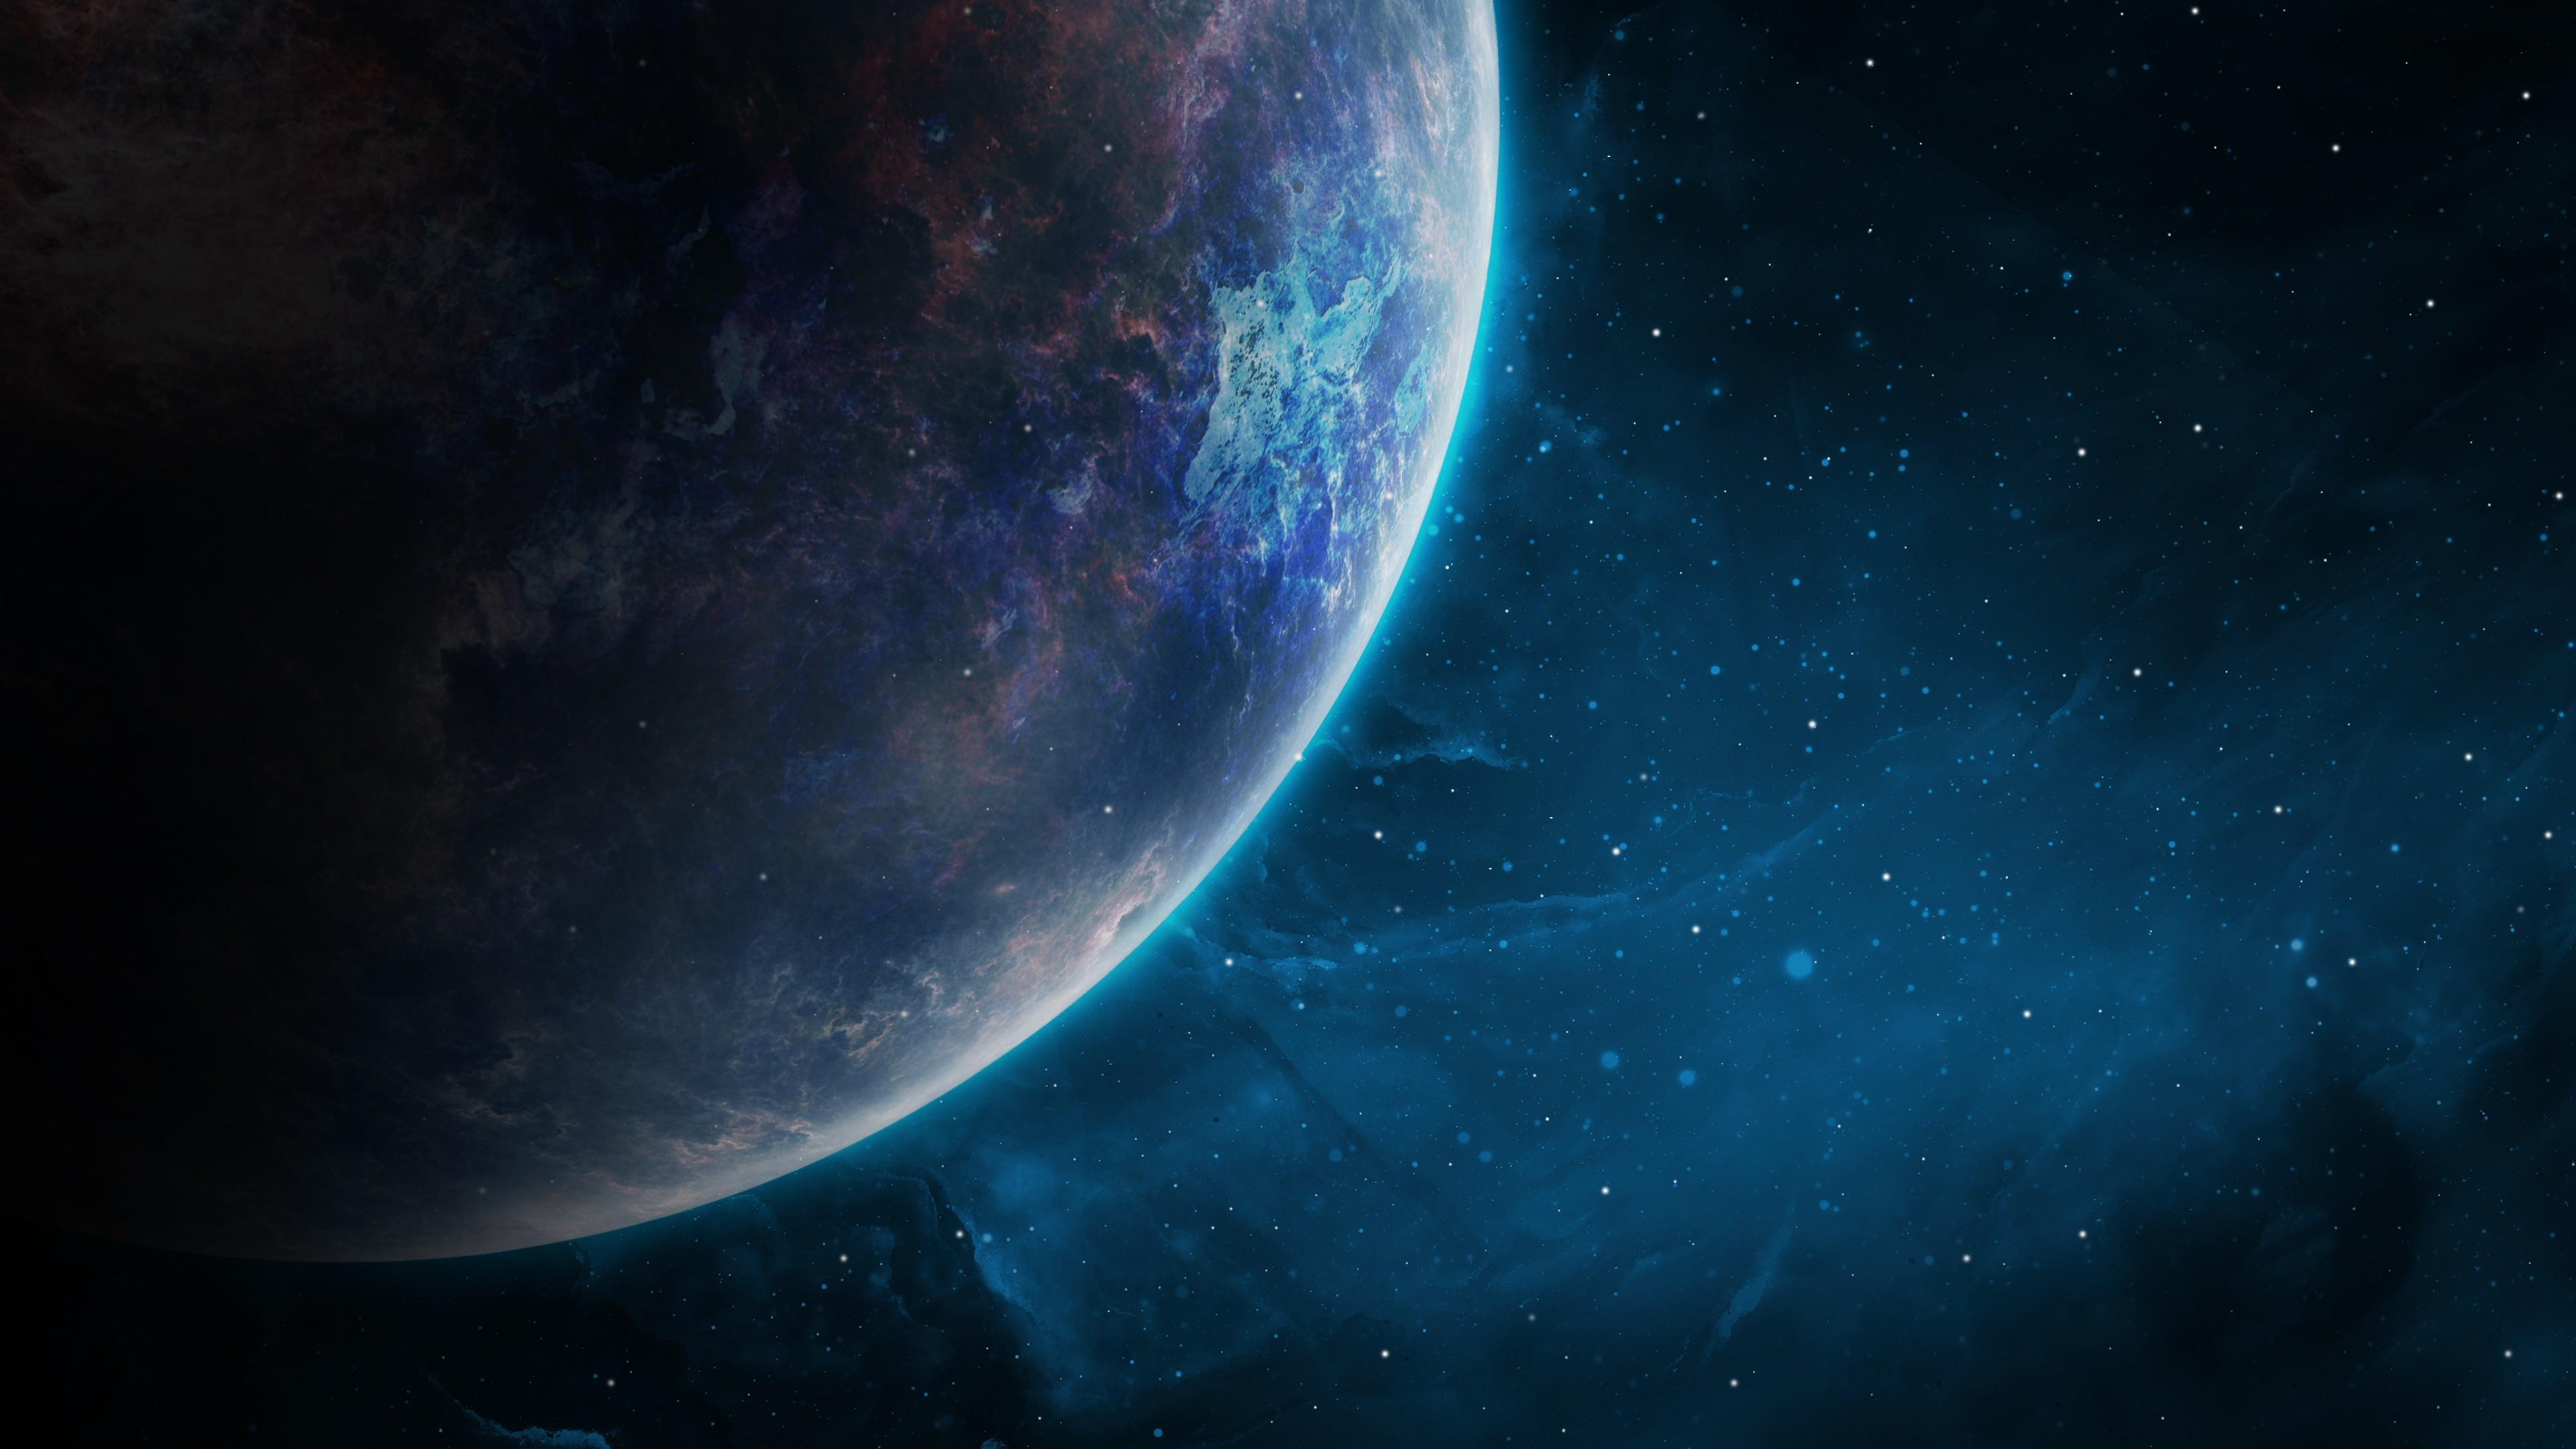 Galaxy Space Wallpaper 4k Apk Download: Wallpaper Space, Galaxy, Planet, 4k, Space #17039